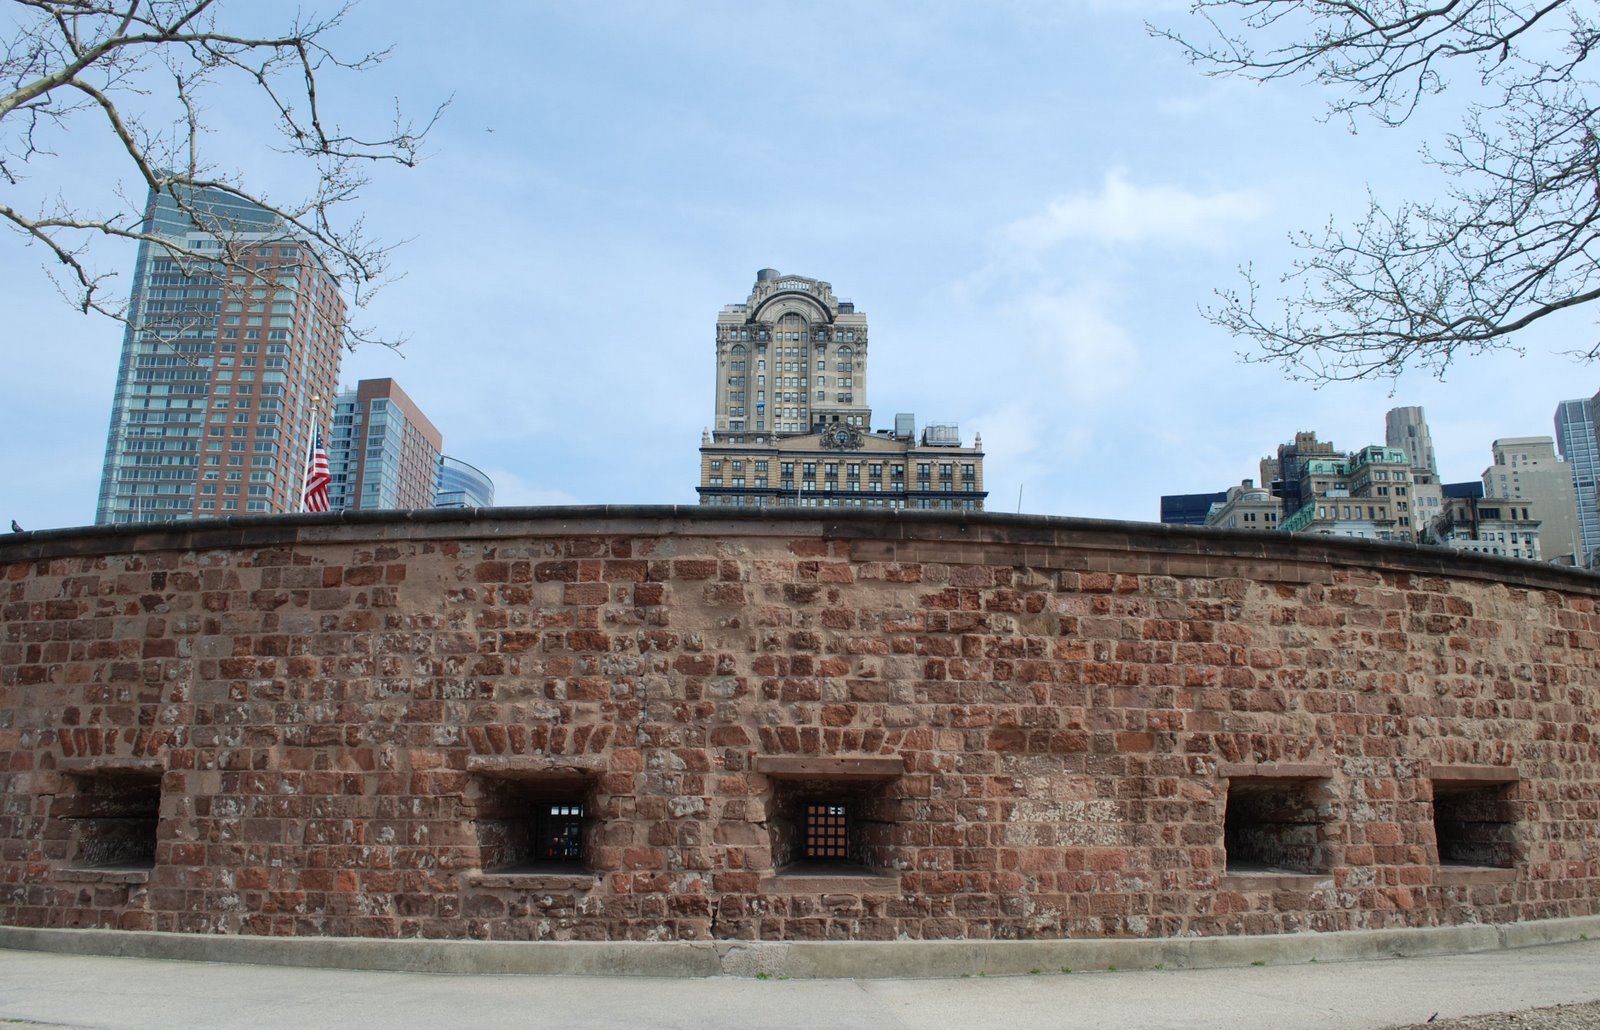 Castle Clinton, Battery Park, Manhattan, New York City